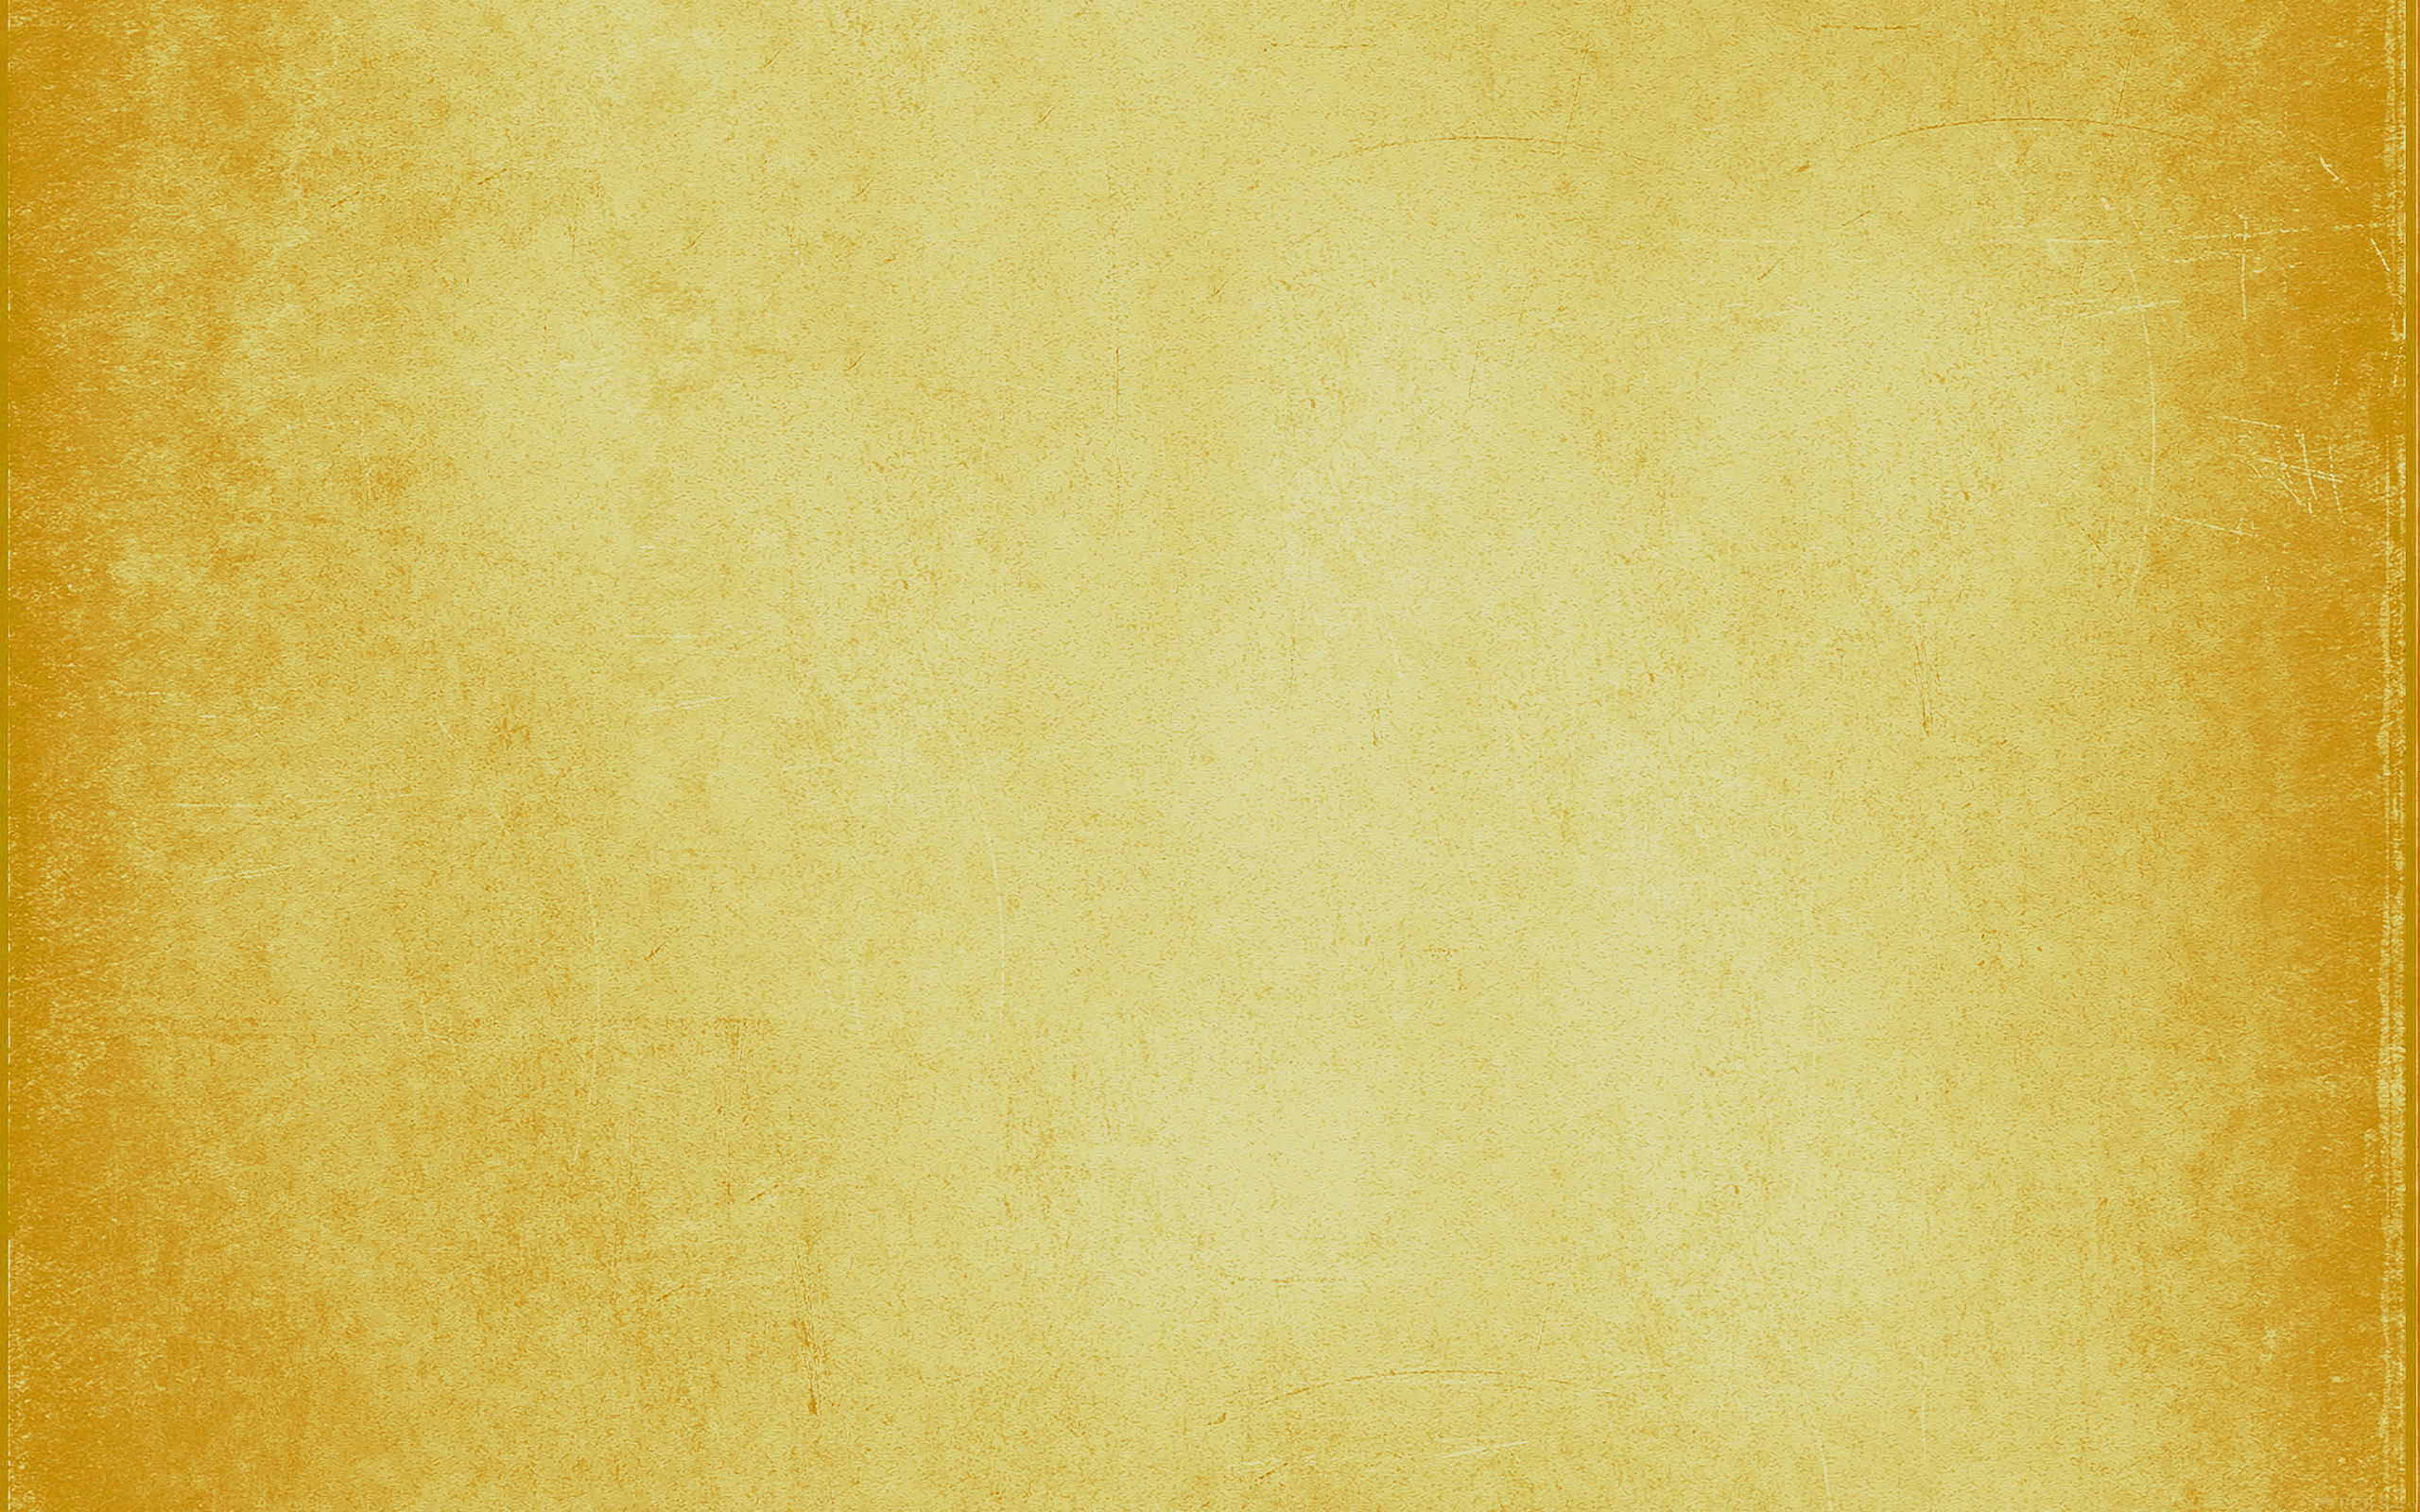 yellow paper wallpaper